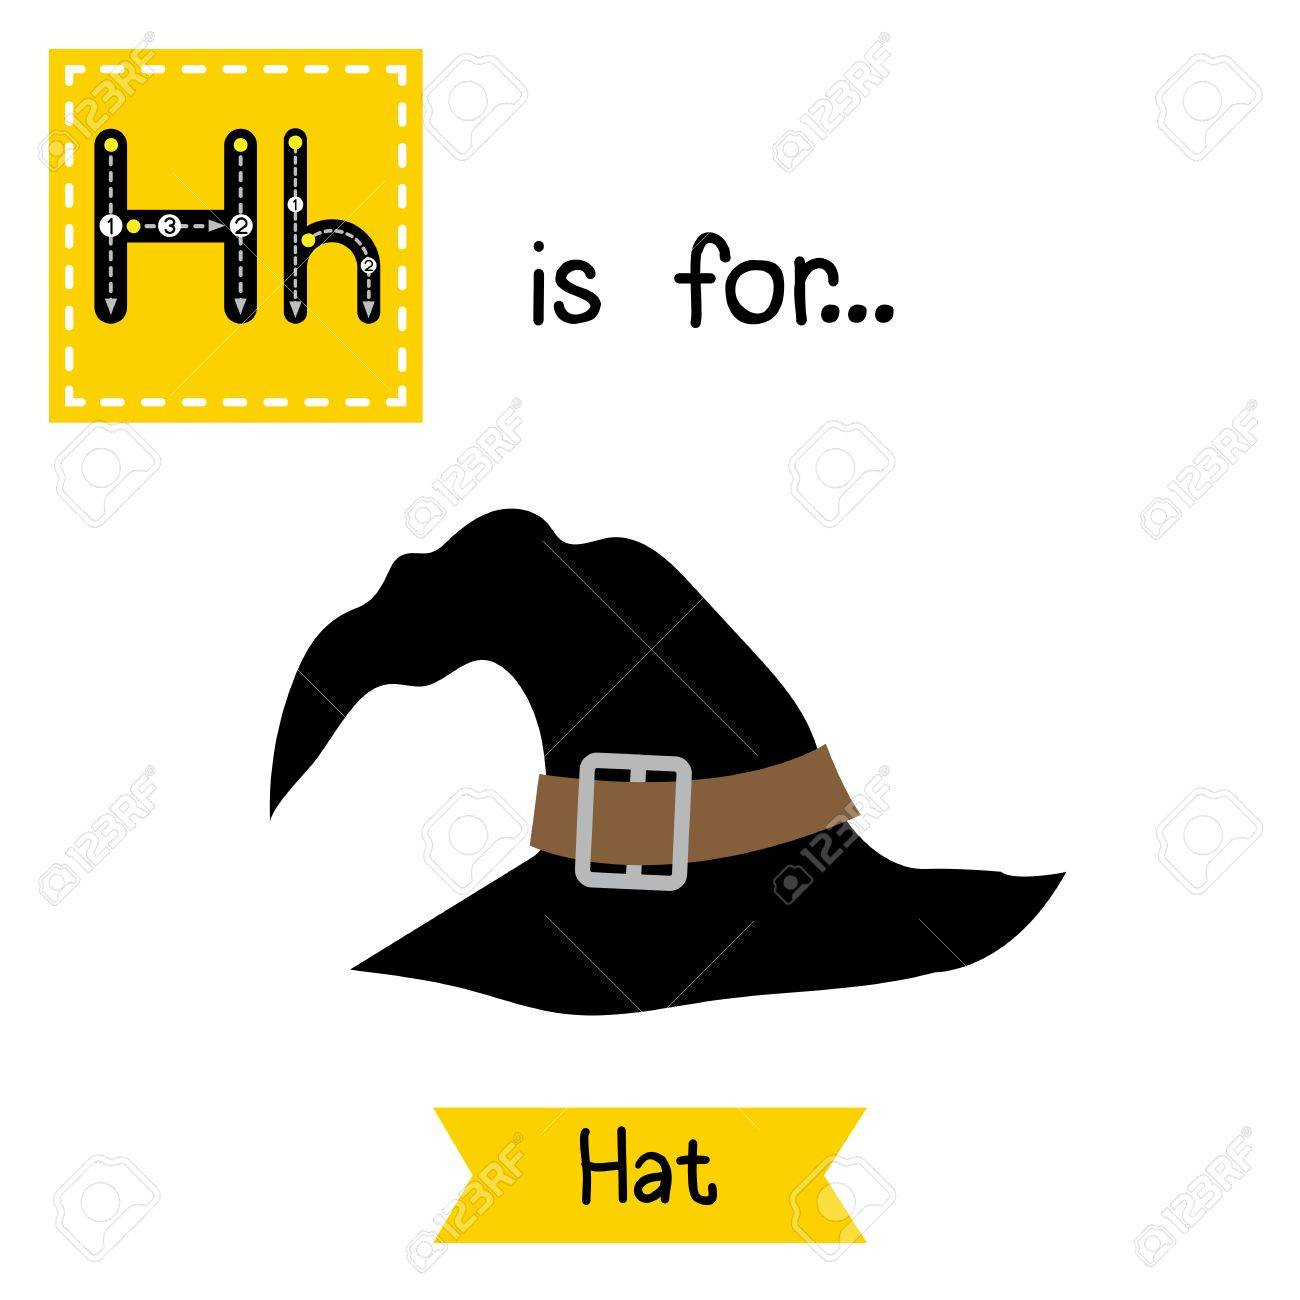 3acc6af1749 Cute children ABC alphabet H letter tracing flashcard of black witch Hat  for kids learning English